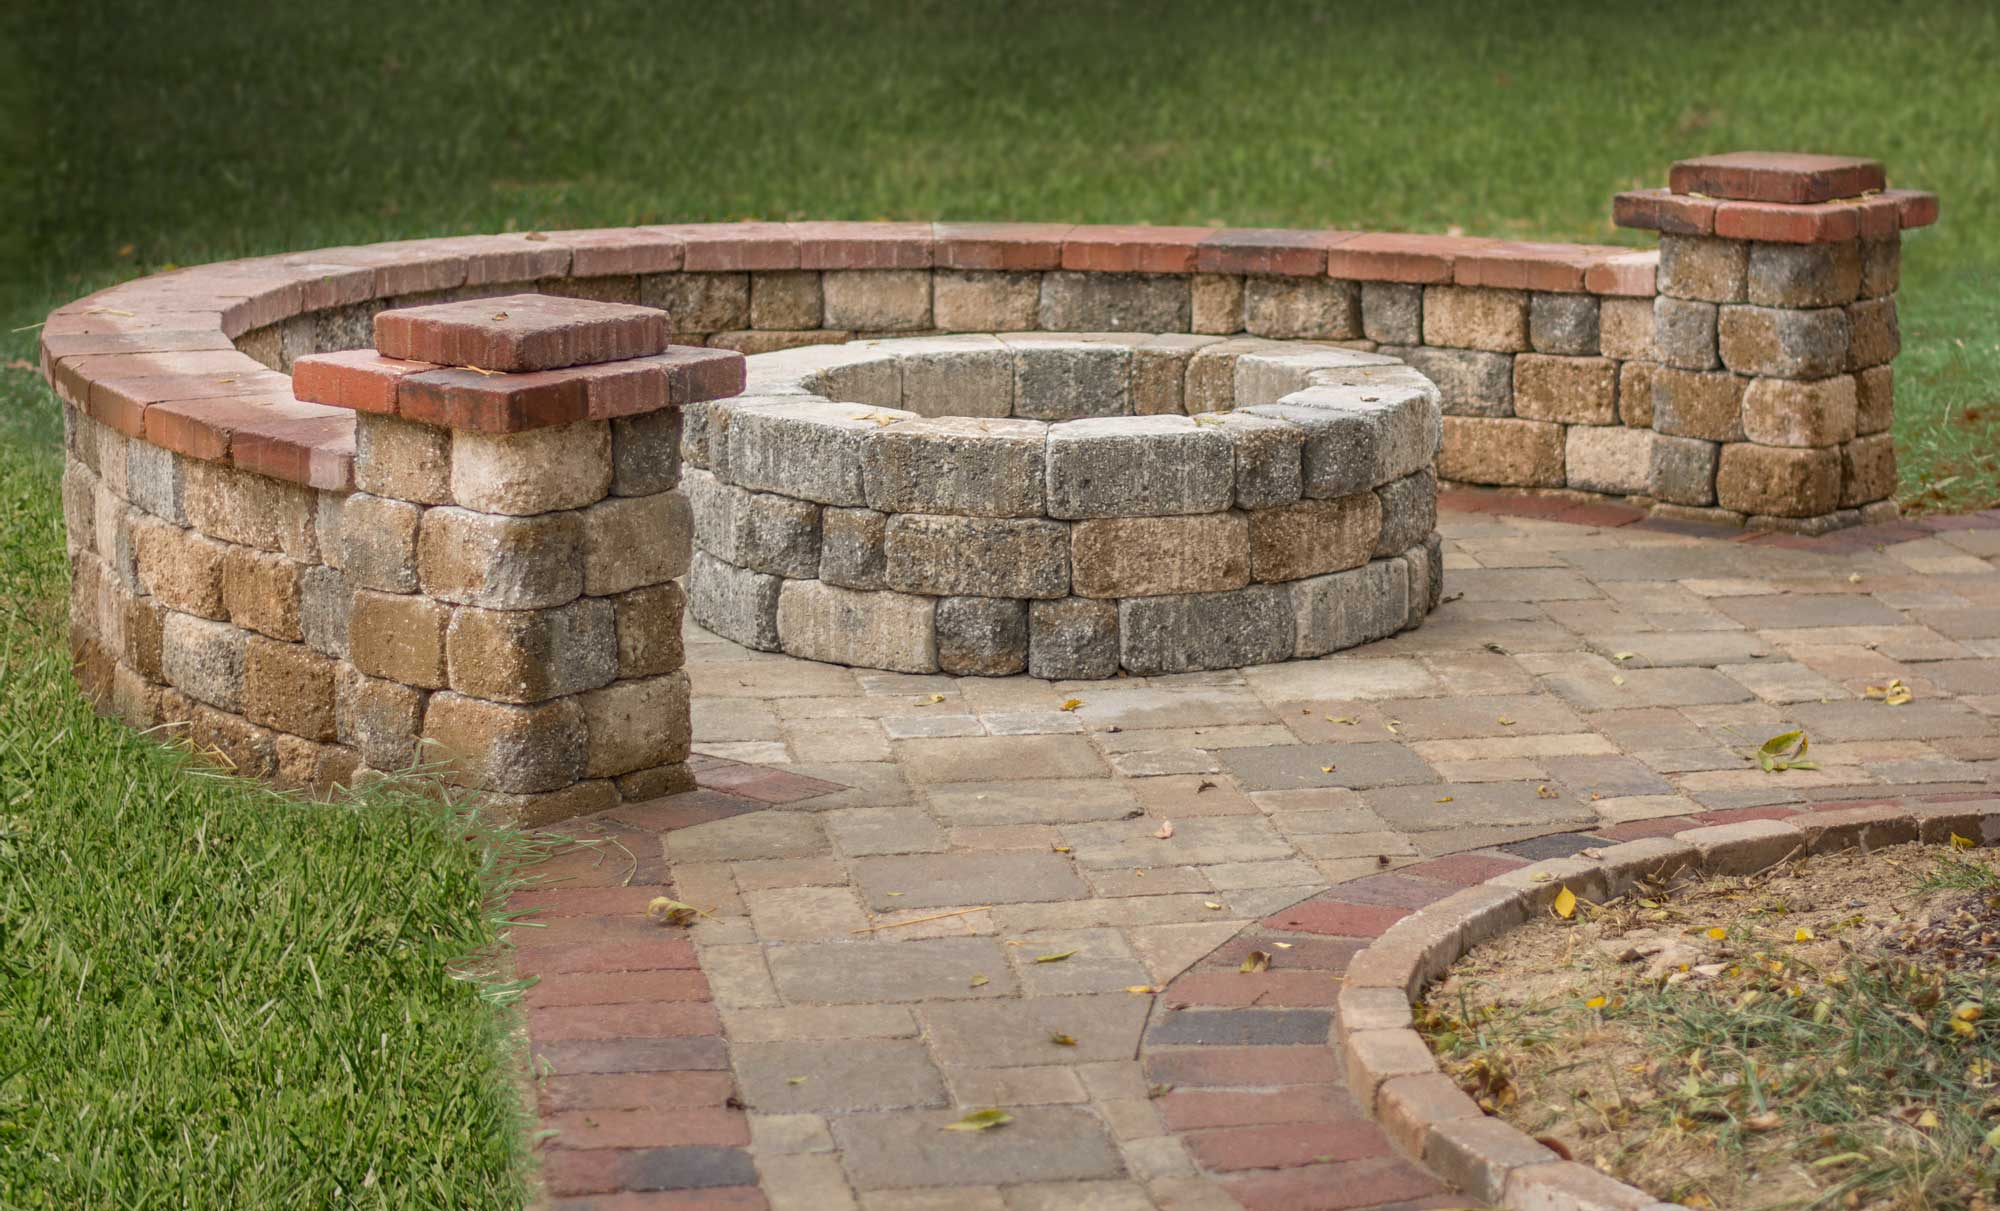 Madera Block Romanstone Hardscapes Versatile Old World